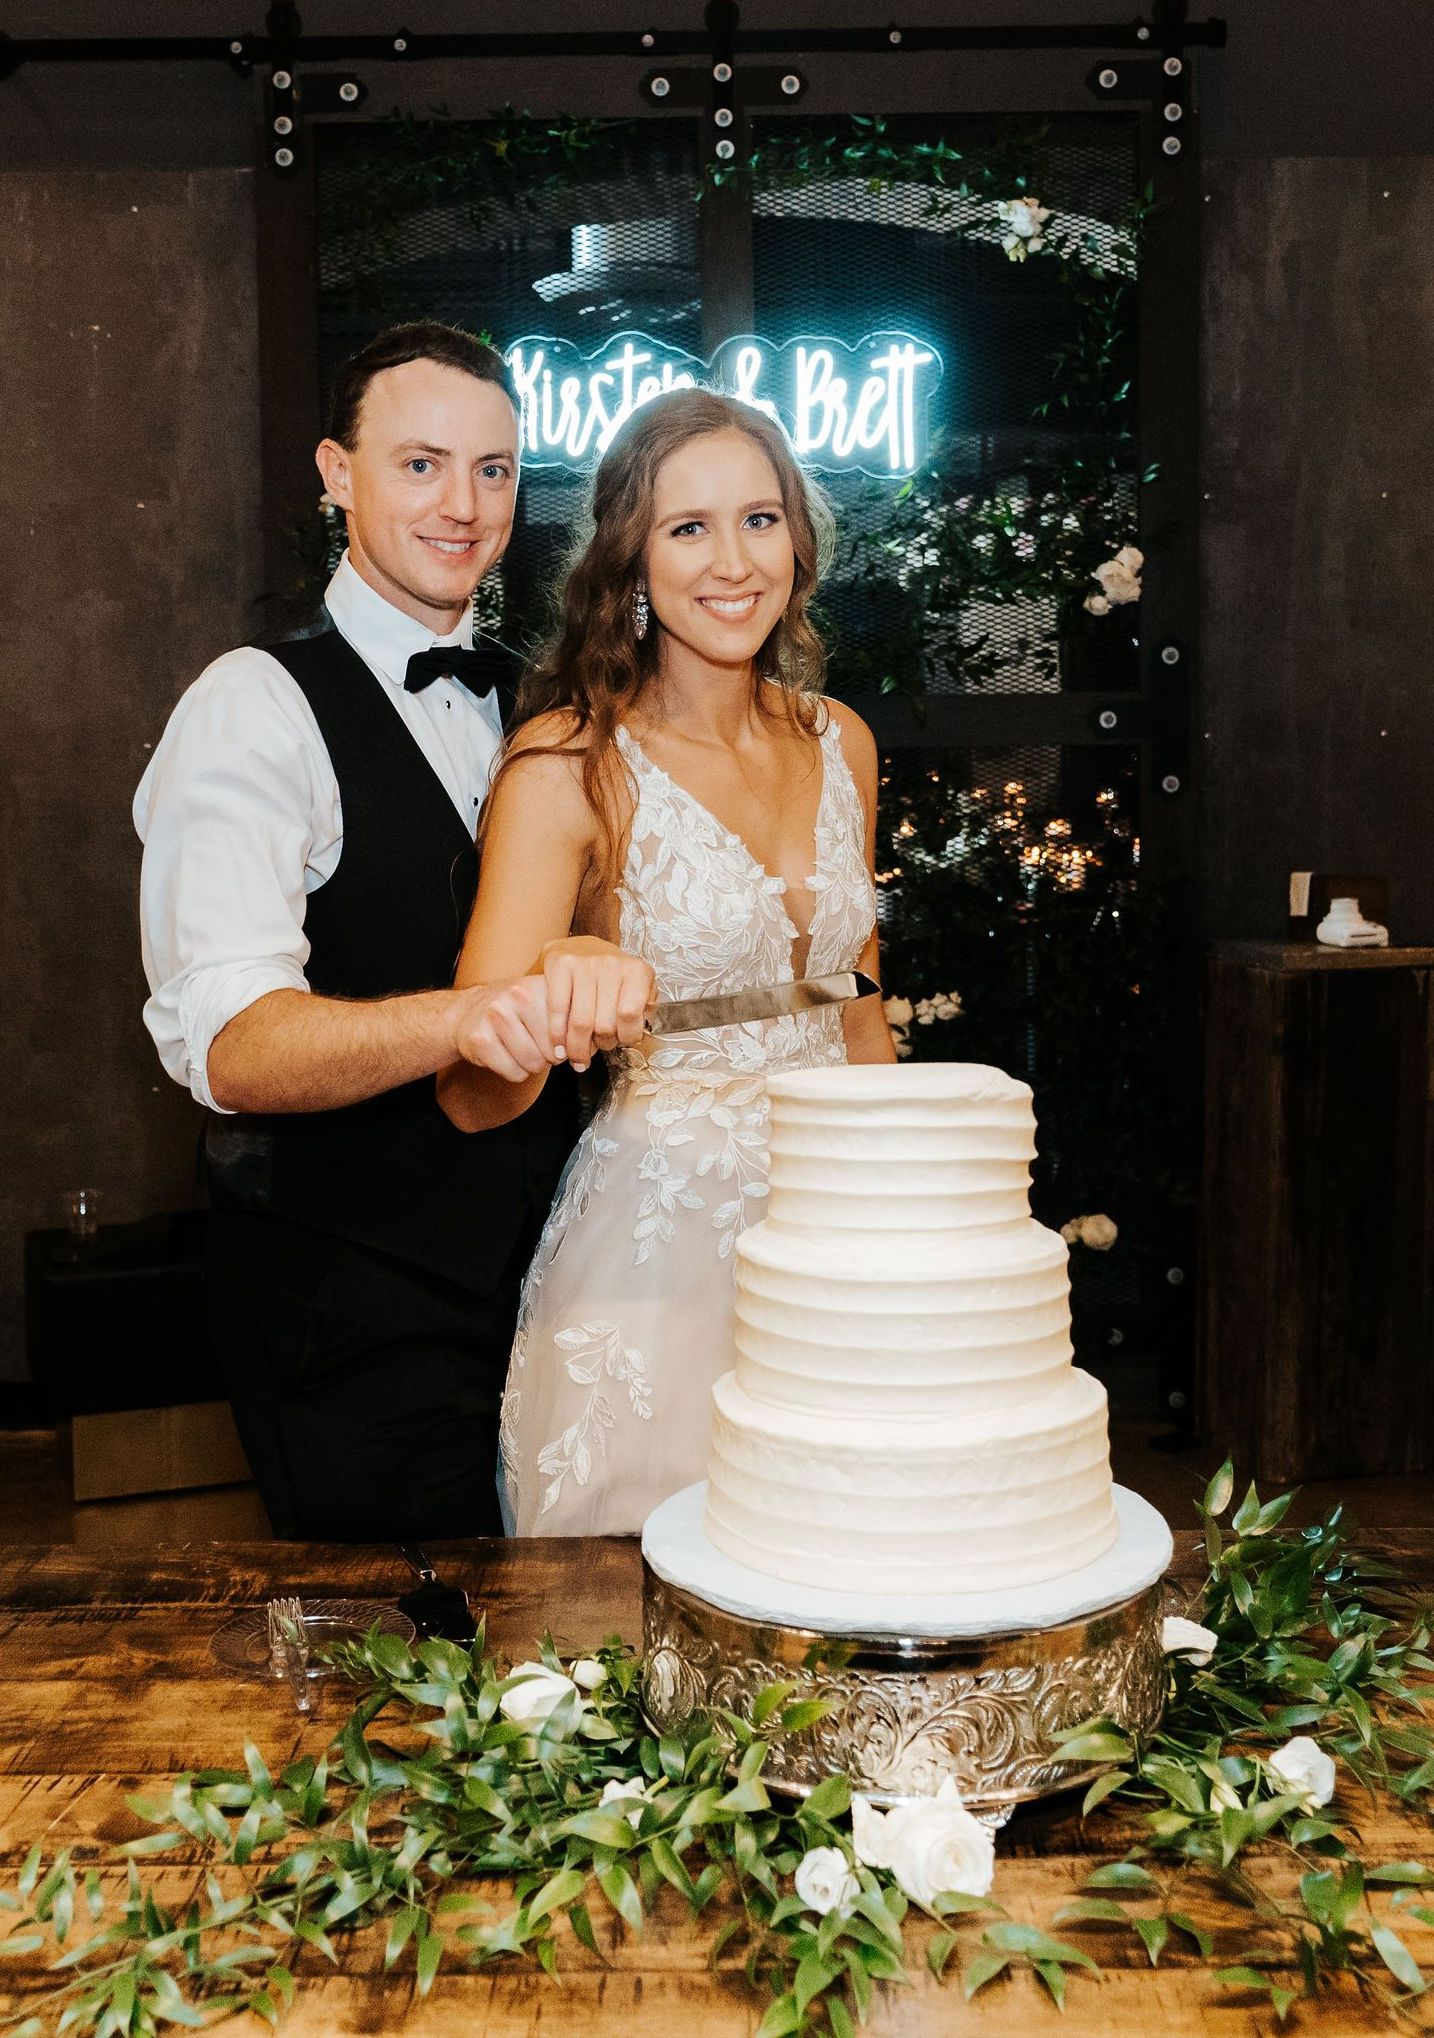 Kirsten and Brett prepare to cut their three-tiered plain white cake while a neon sign with the couple's names shines bright in the background.